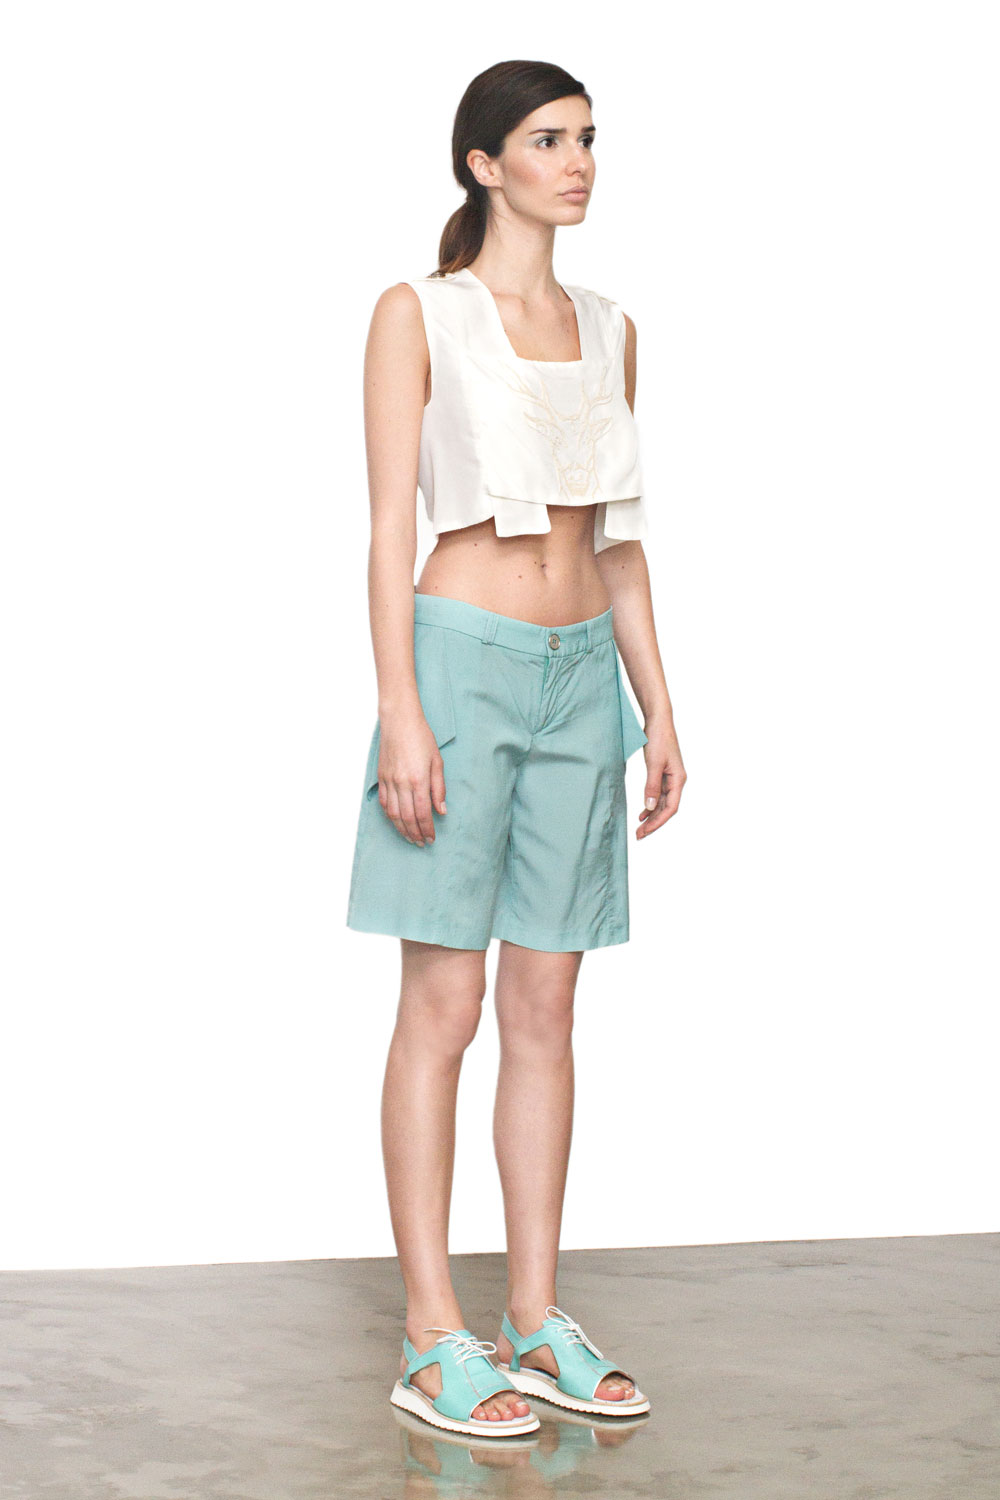 Green Shorts   One available size 36. Original Price 100€ | Discount Price 40€ Ref. LCSS15S34  *shoes are also available for sale